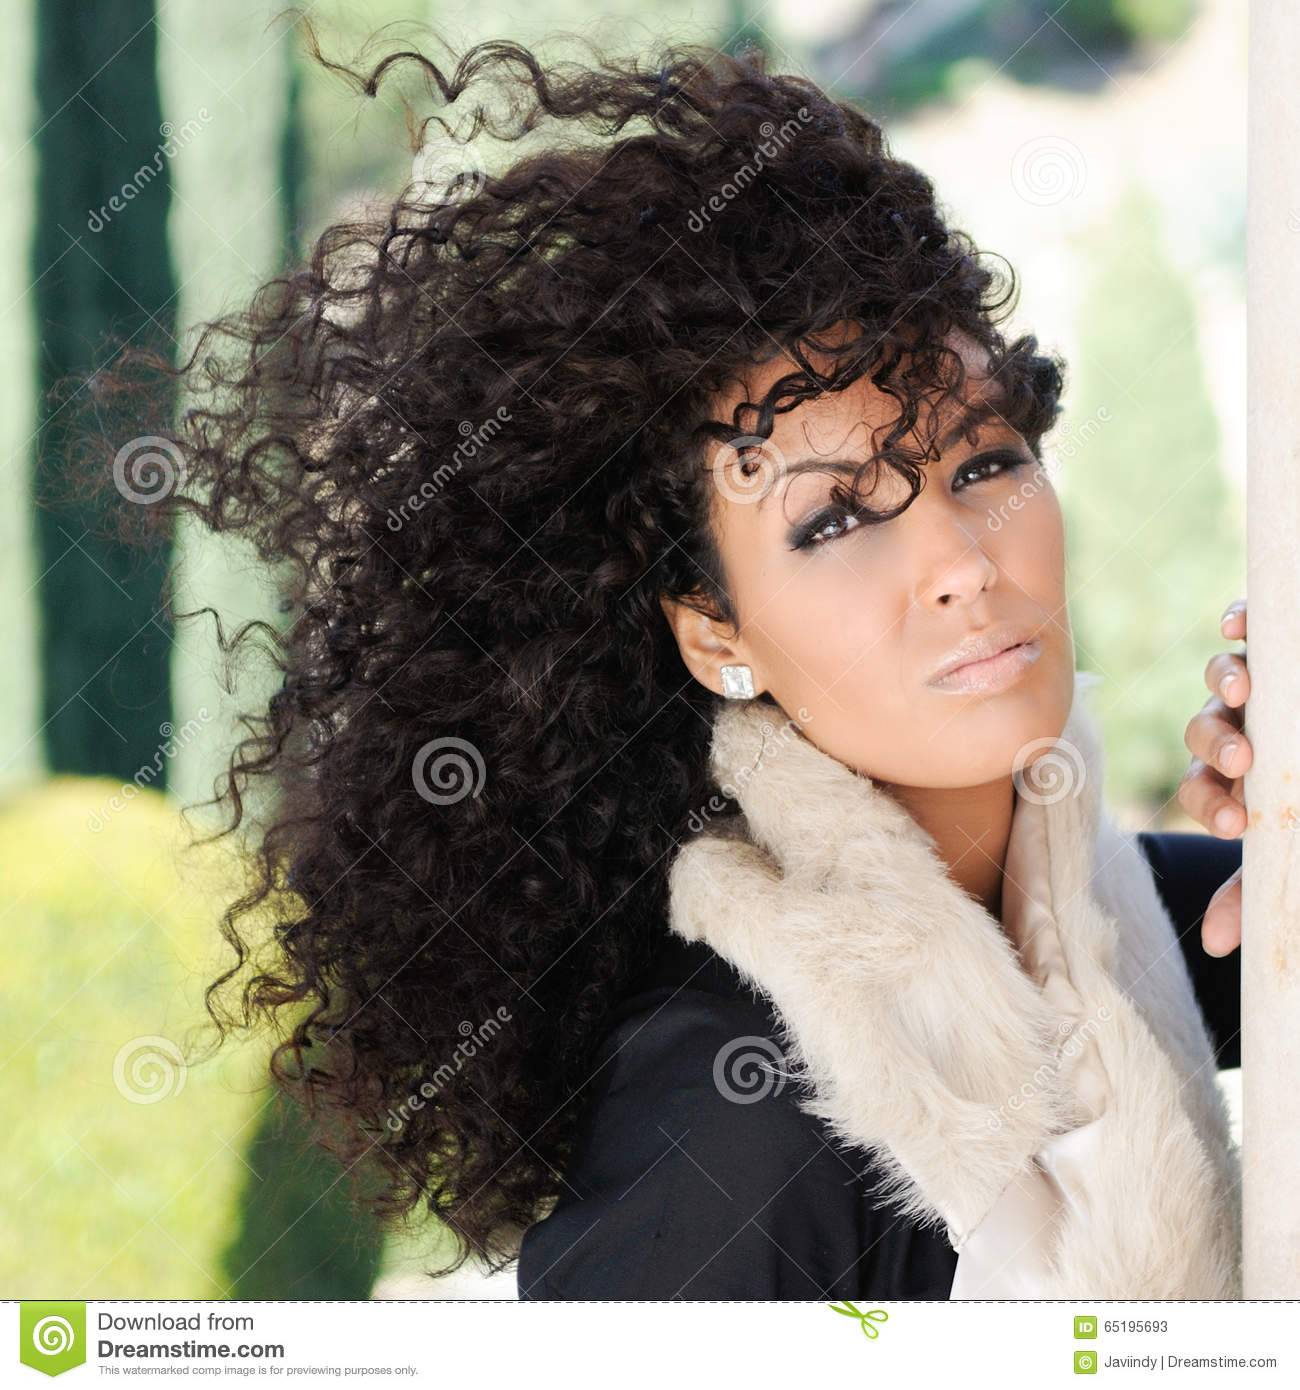 Black Women Urban Styles: Young Black Woman, Afro Hairstyle, In Urban Background